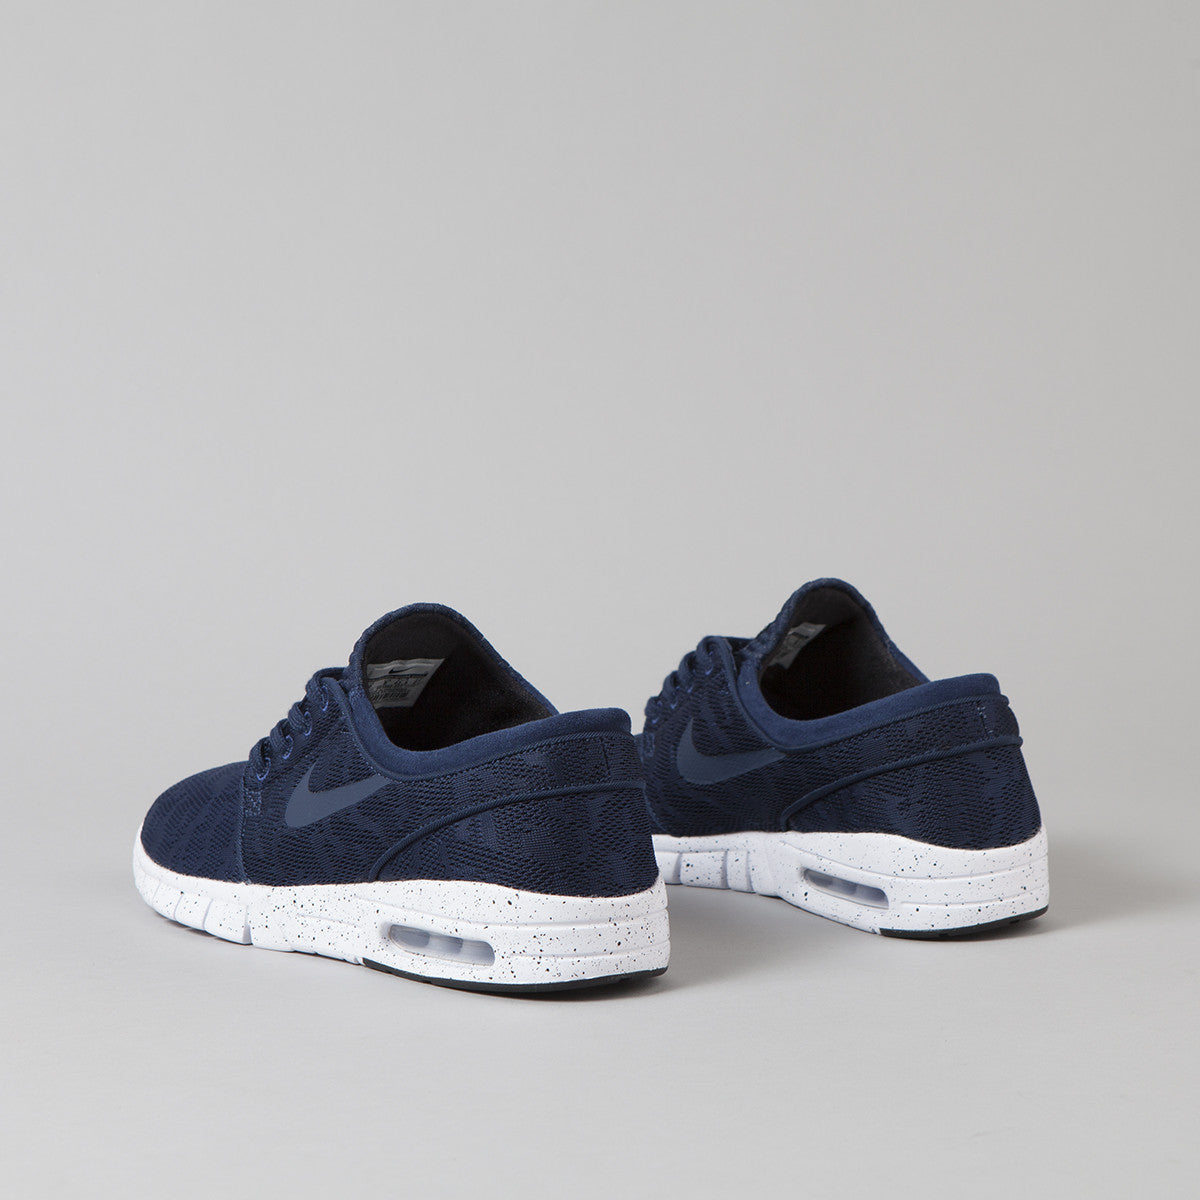 Nike SB Stefan Janoski Max Shoes Midnight Navy / Mid Navy - White